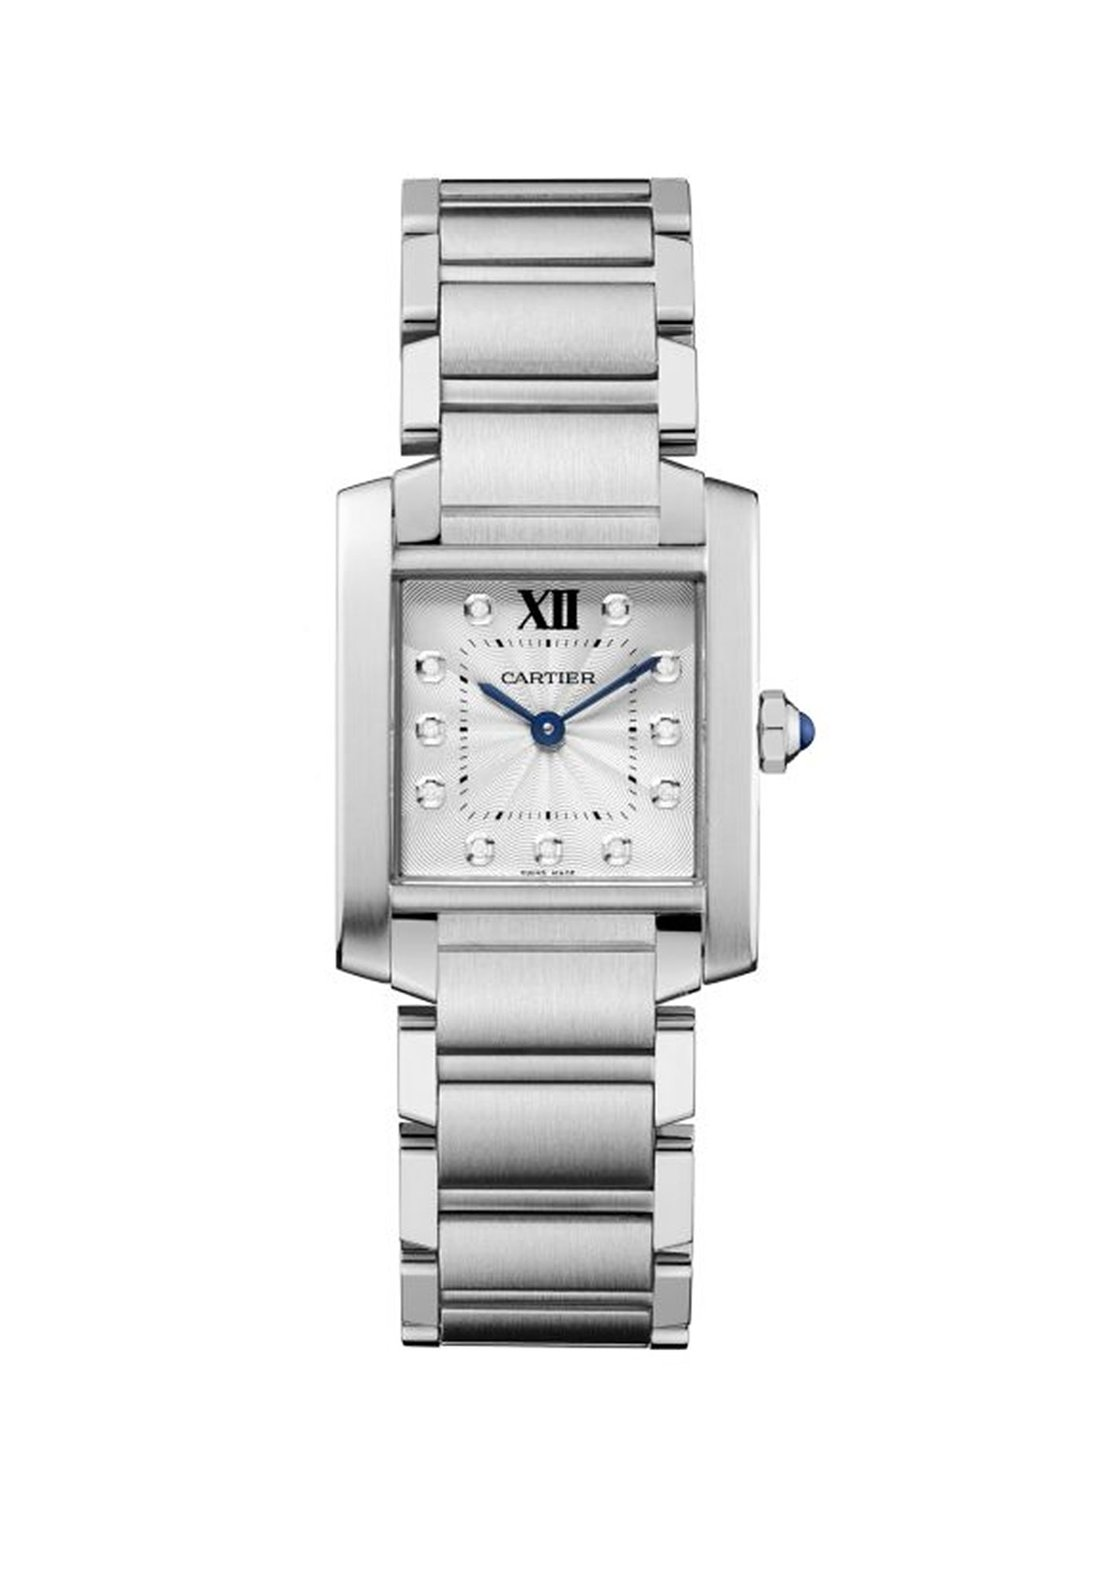 picture-of-cartier-watch-photo.jpg